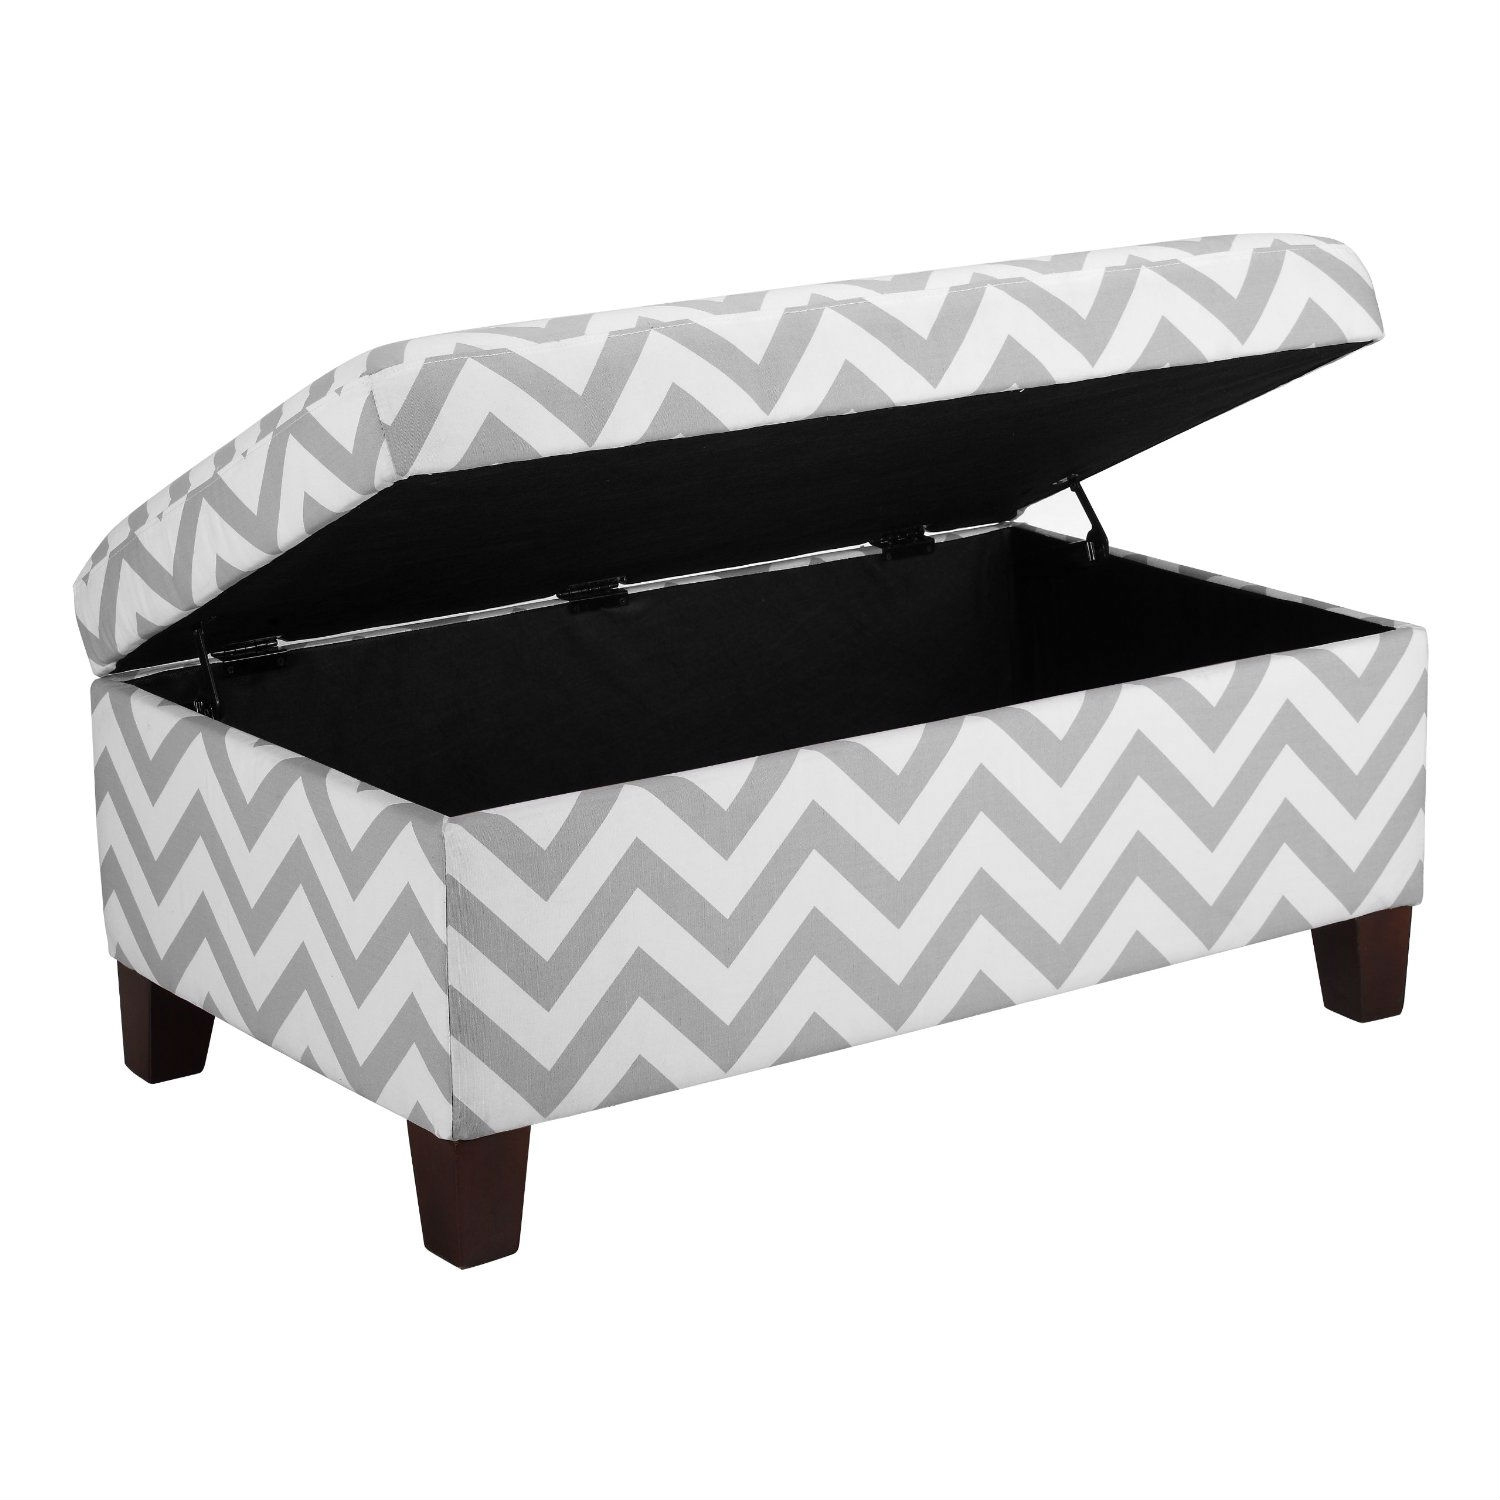 Grey & White Chevron Stripe Padded Storage Ottoman Bench - Grey & White Chevron Stripe Padded Storage Ottoman Bench